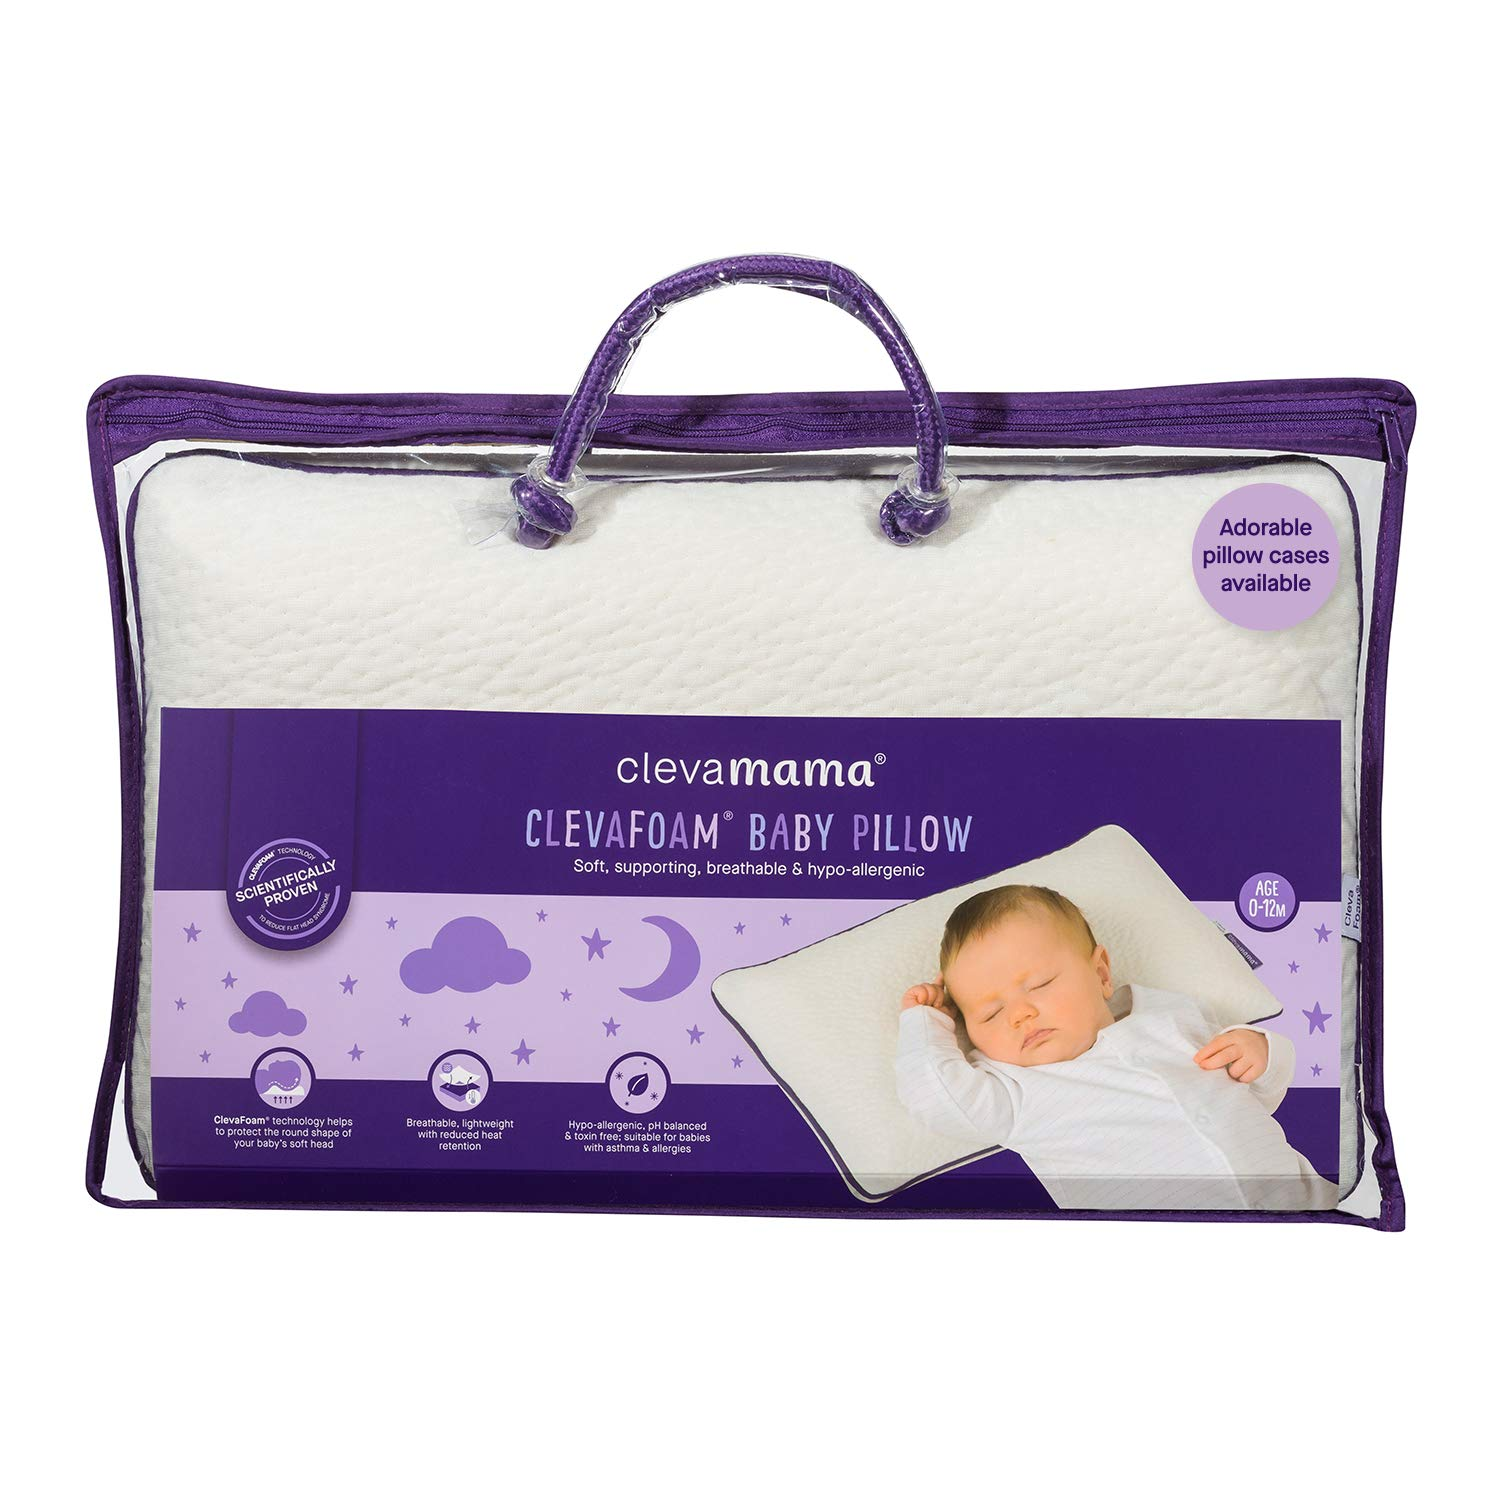 ClevaMama ClevaFoam Baby Pillow - Breathable Infant Pillow to Prevent Flat Head Syndrome 0-12 month by Clevamama